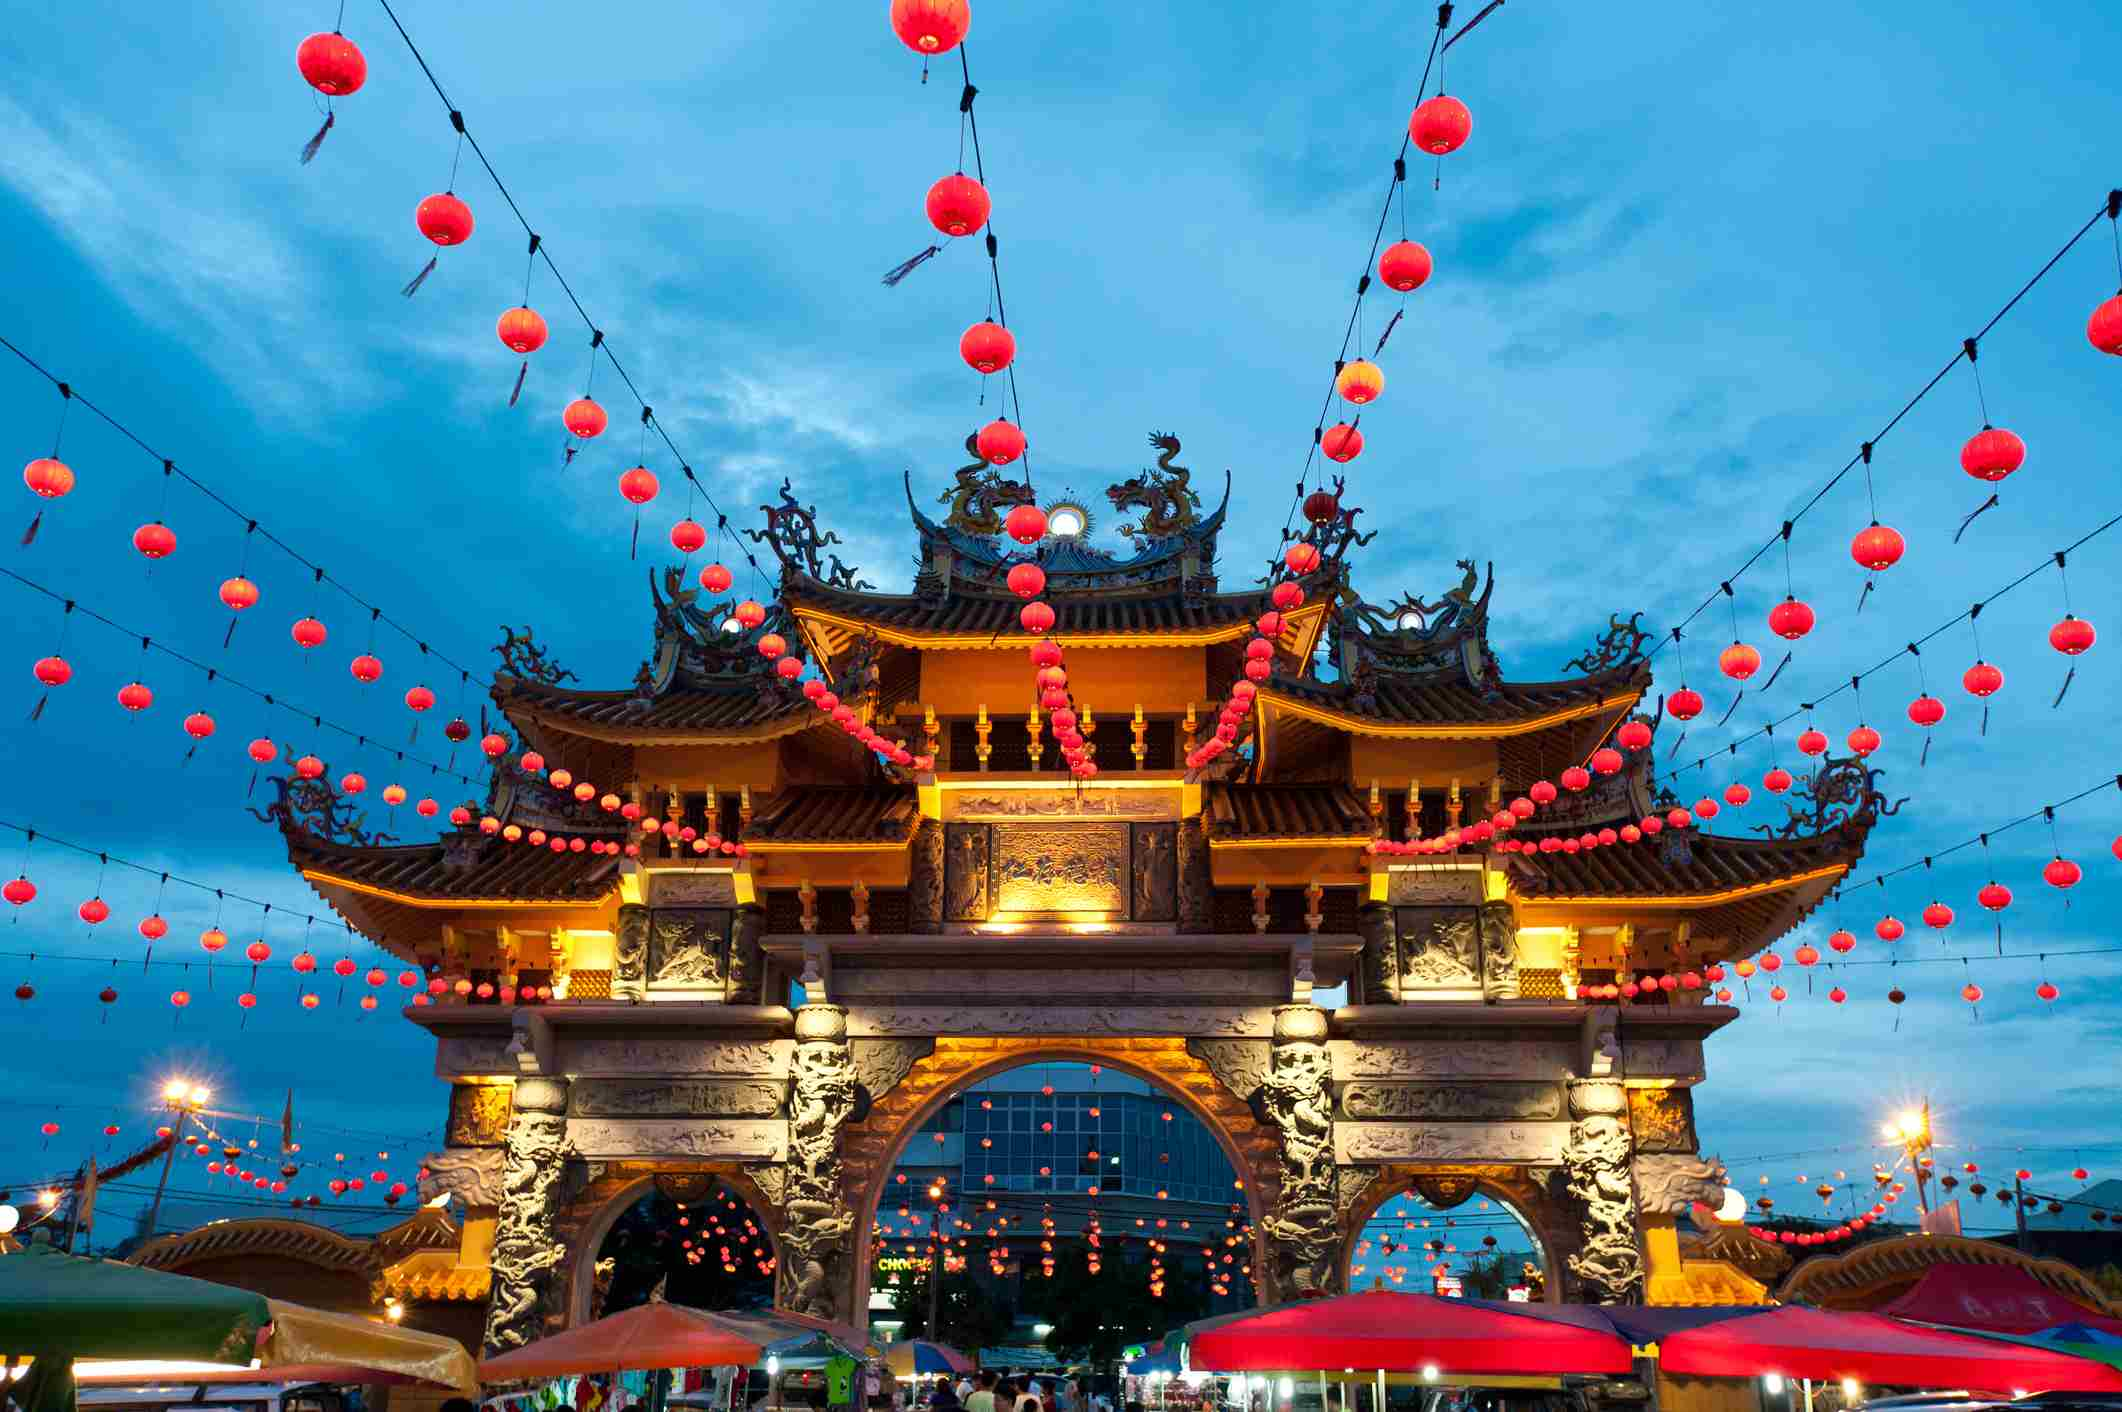 Magnificent lighted Gate at Ninth Emperor God's Temple during Chinese New Year festival, in Prai, Penang, Malaysia.